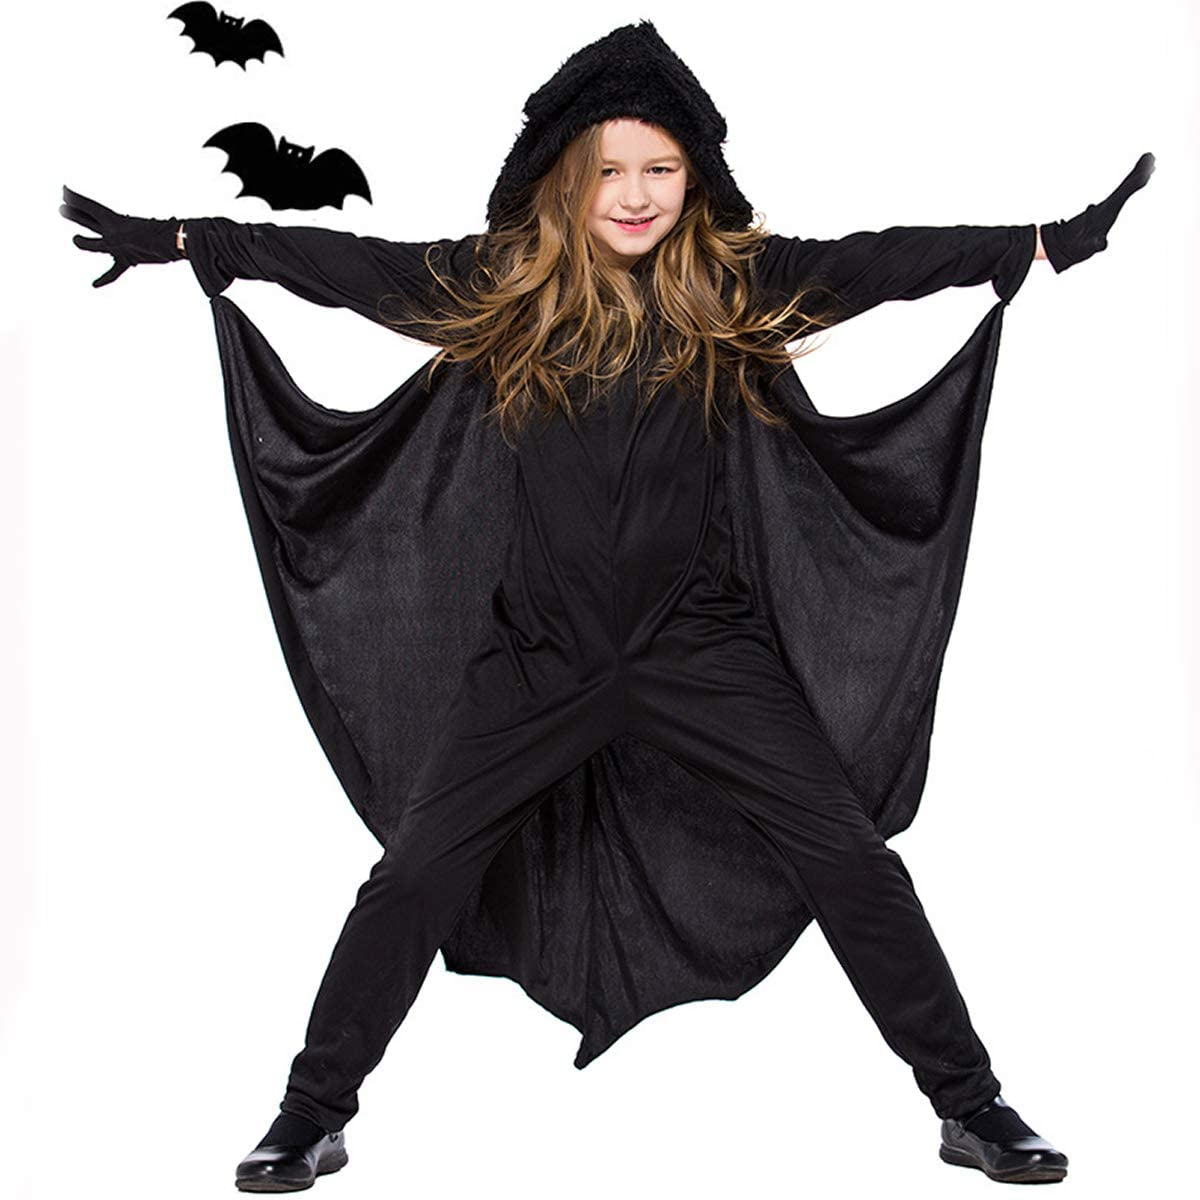 CQDY Kids Bat Jumpsuit Halloween Cosplay Costume for Boys Girls with Gloves Children Unisex Vampire Party Suits